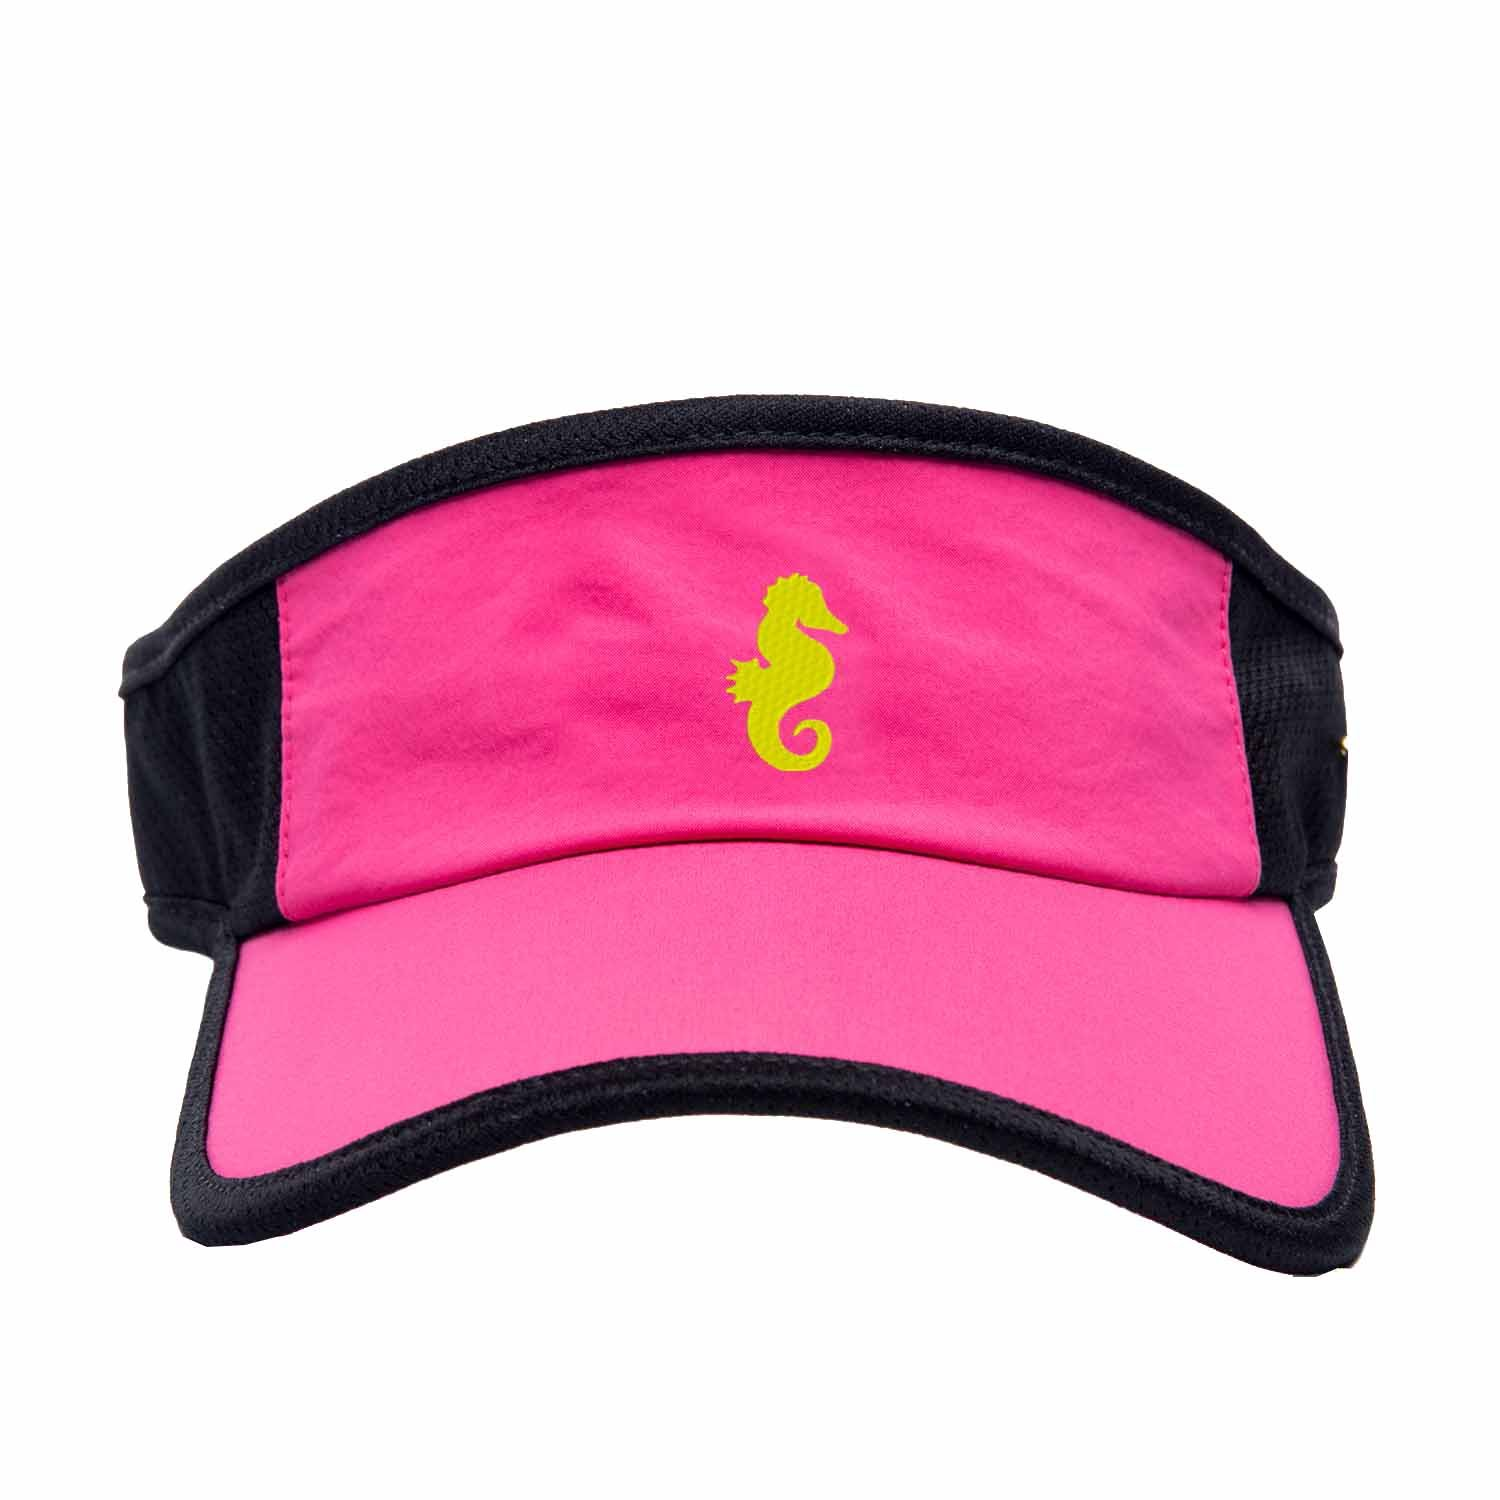 Women Golf Visor Embroidered Cute Seahorse Outdoor Hat Breathable Cap (Pink)  at Amazon Women s Clothing store  8d0b87f25ed